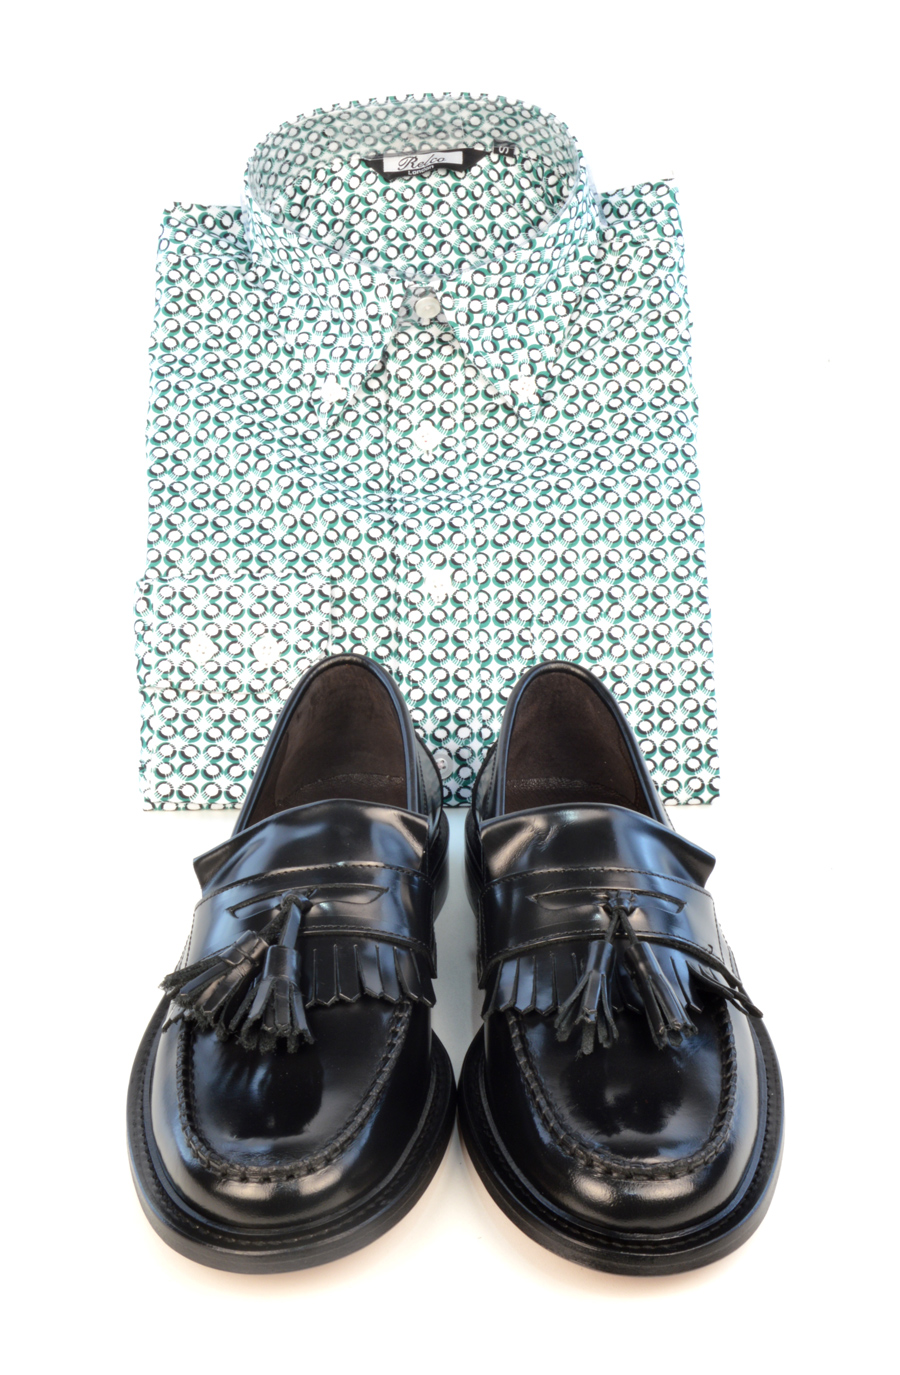 modshoes-prince-black-tassel-loafers-with-green-pattern-shirt